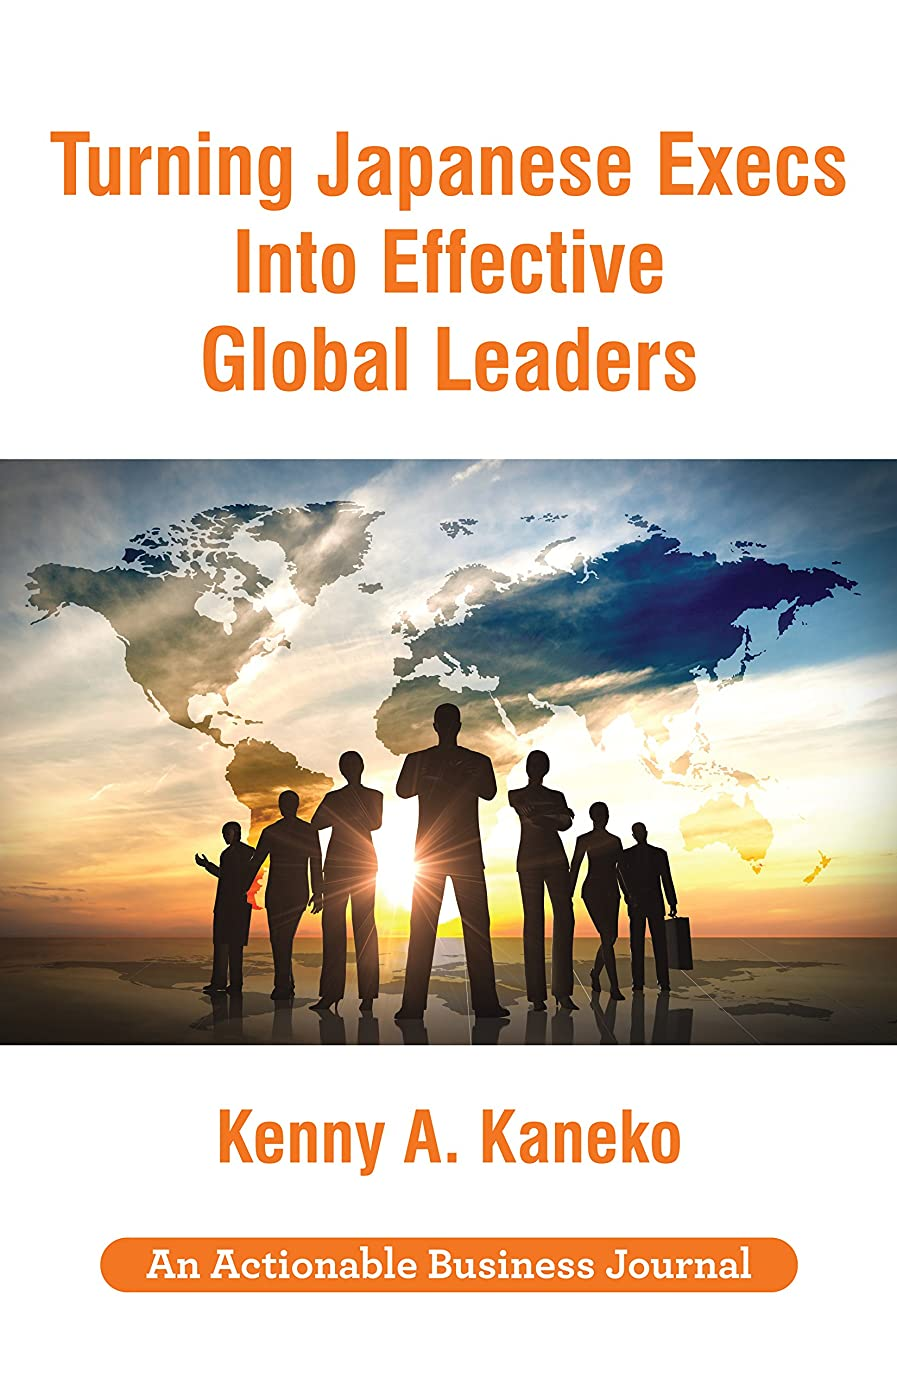 Turning Japanese Execs into Effective Global Leaders: Redefining Traditional Leadership in a Global World (English Edition)